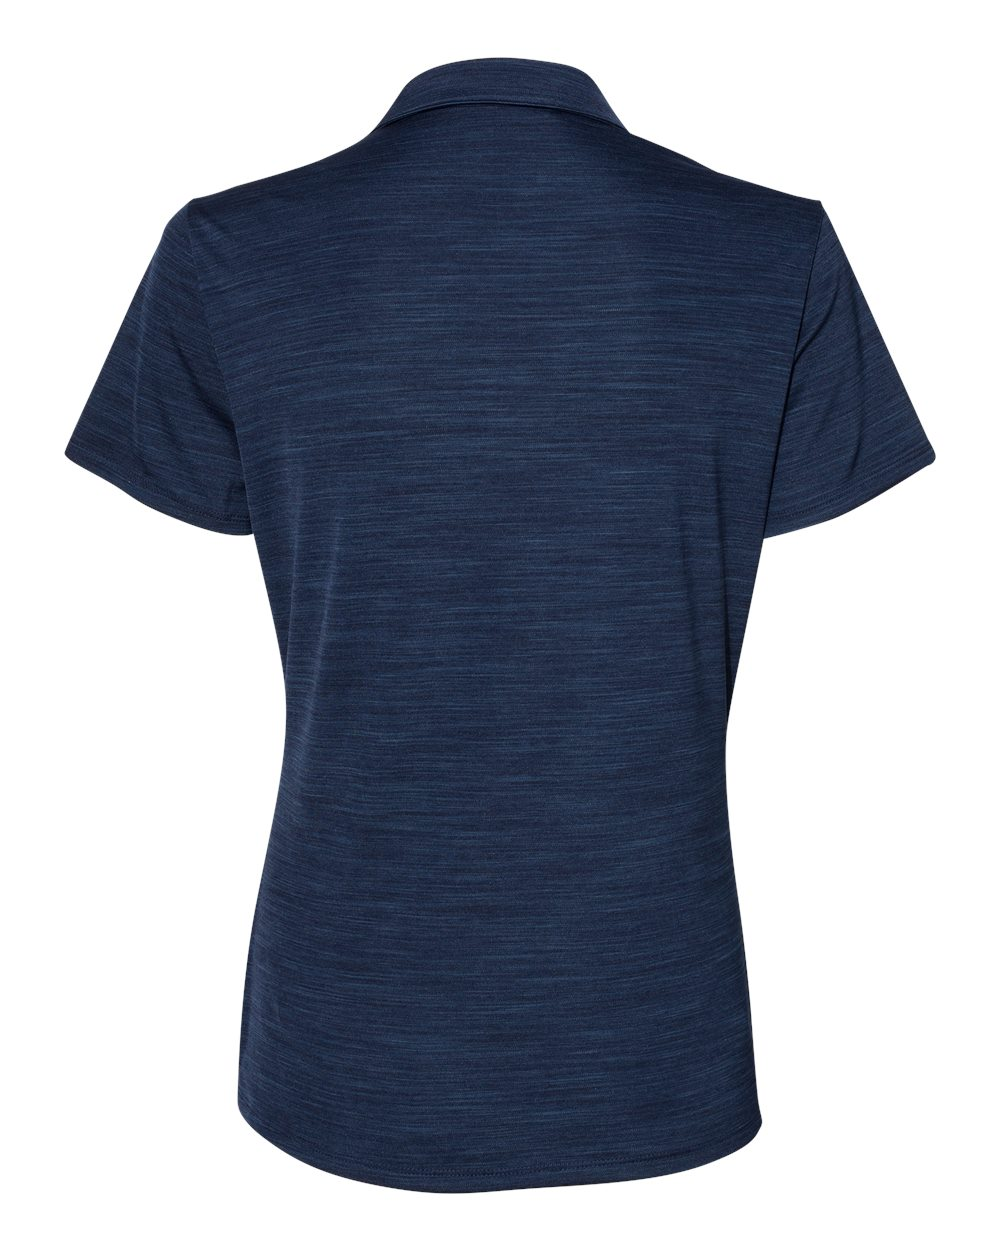 click to view Collegiate Navy Melange